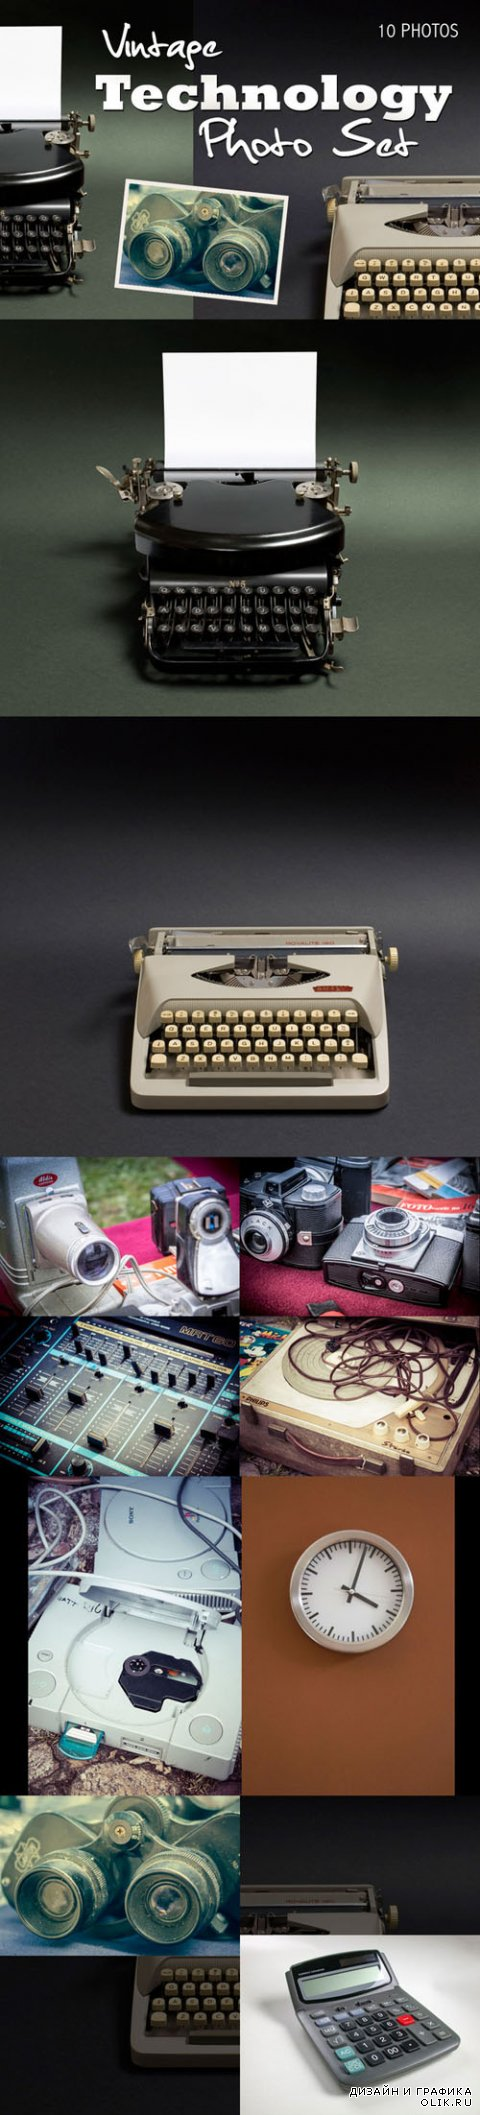 Vintage Technology Photo Set - Creativemarket 53033